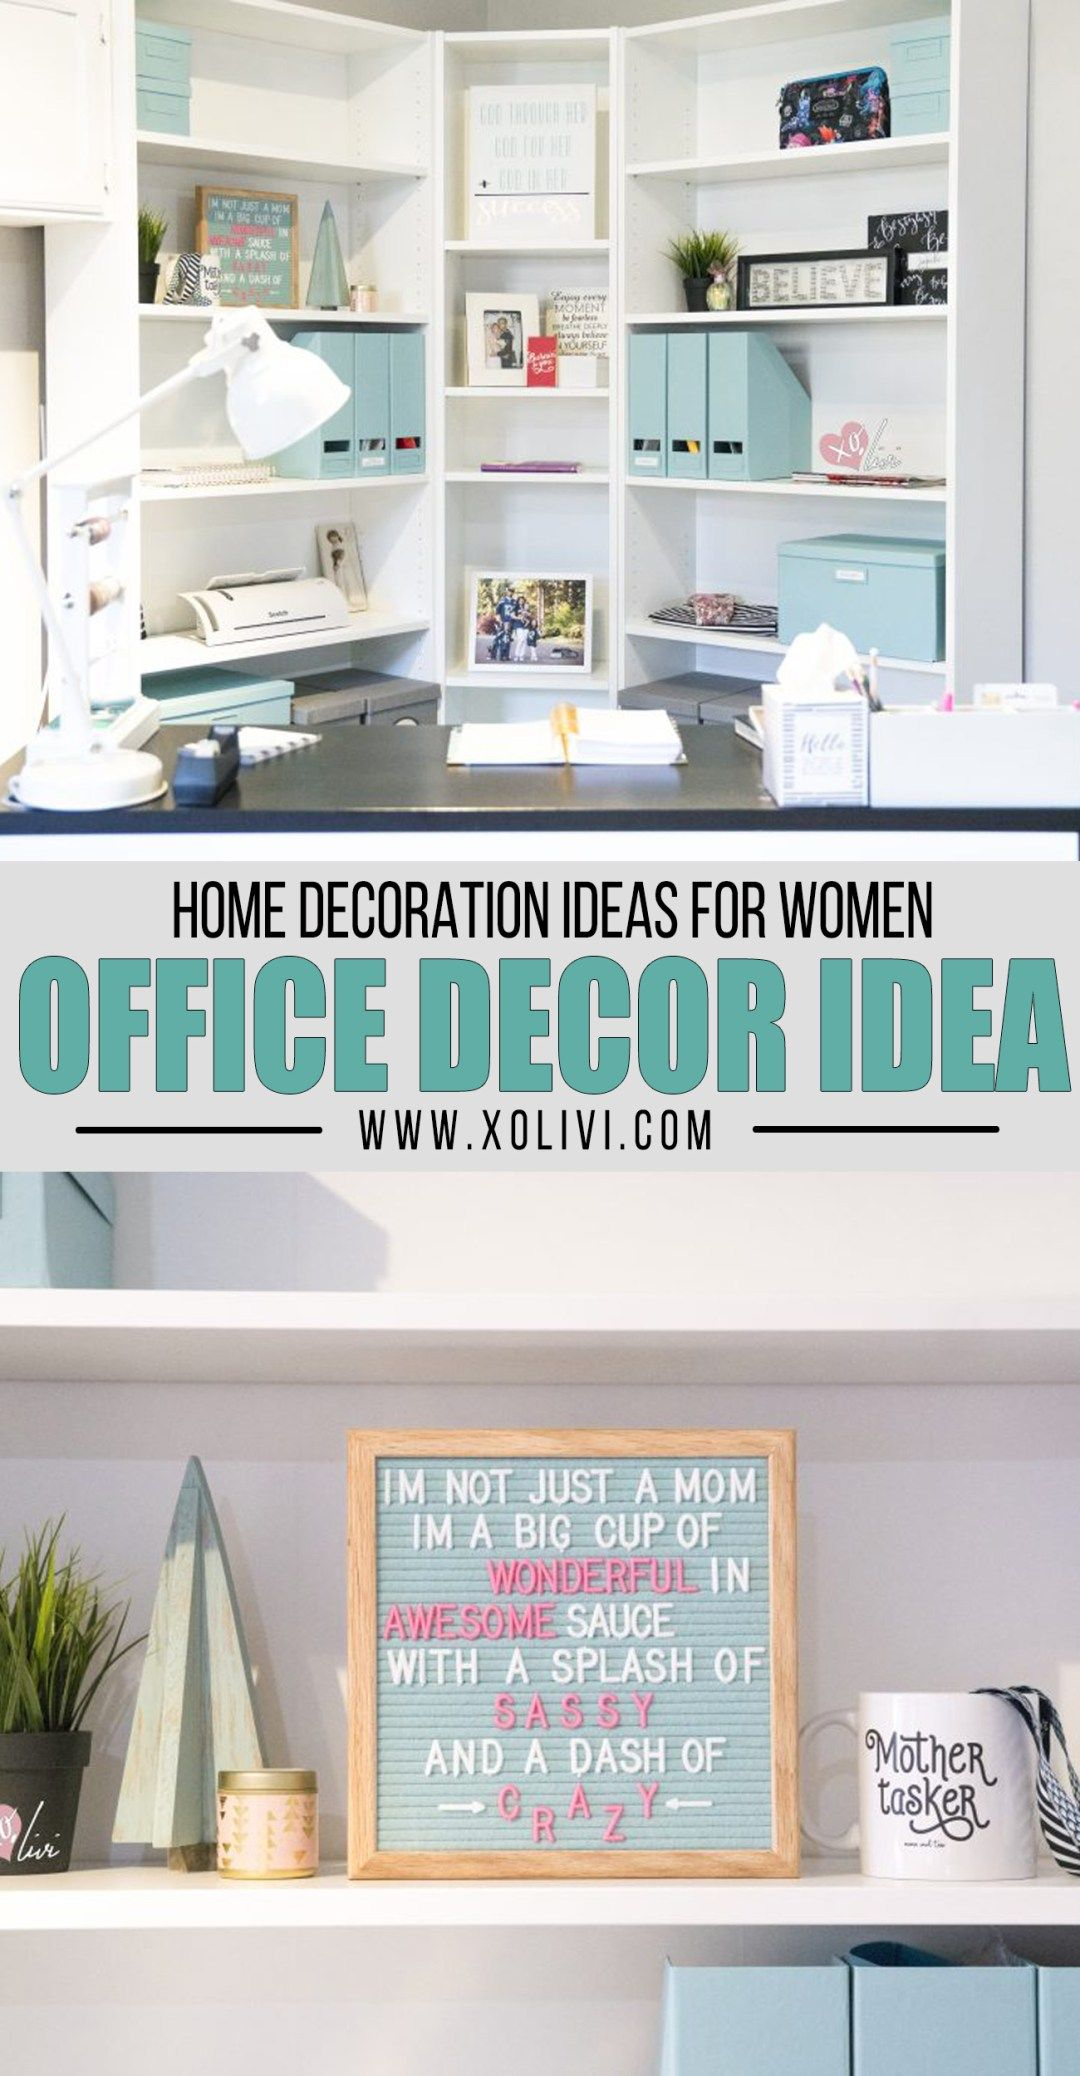 I Like The Dark Wood Built In S Home Office Design Home